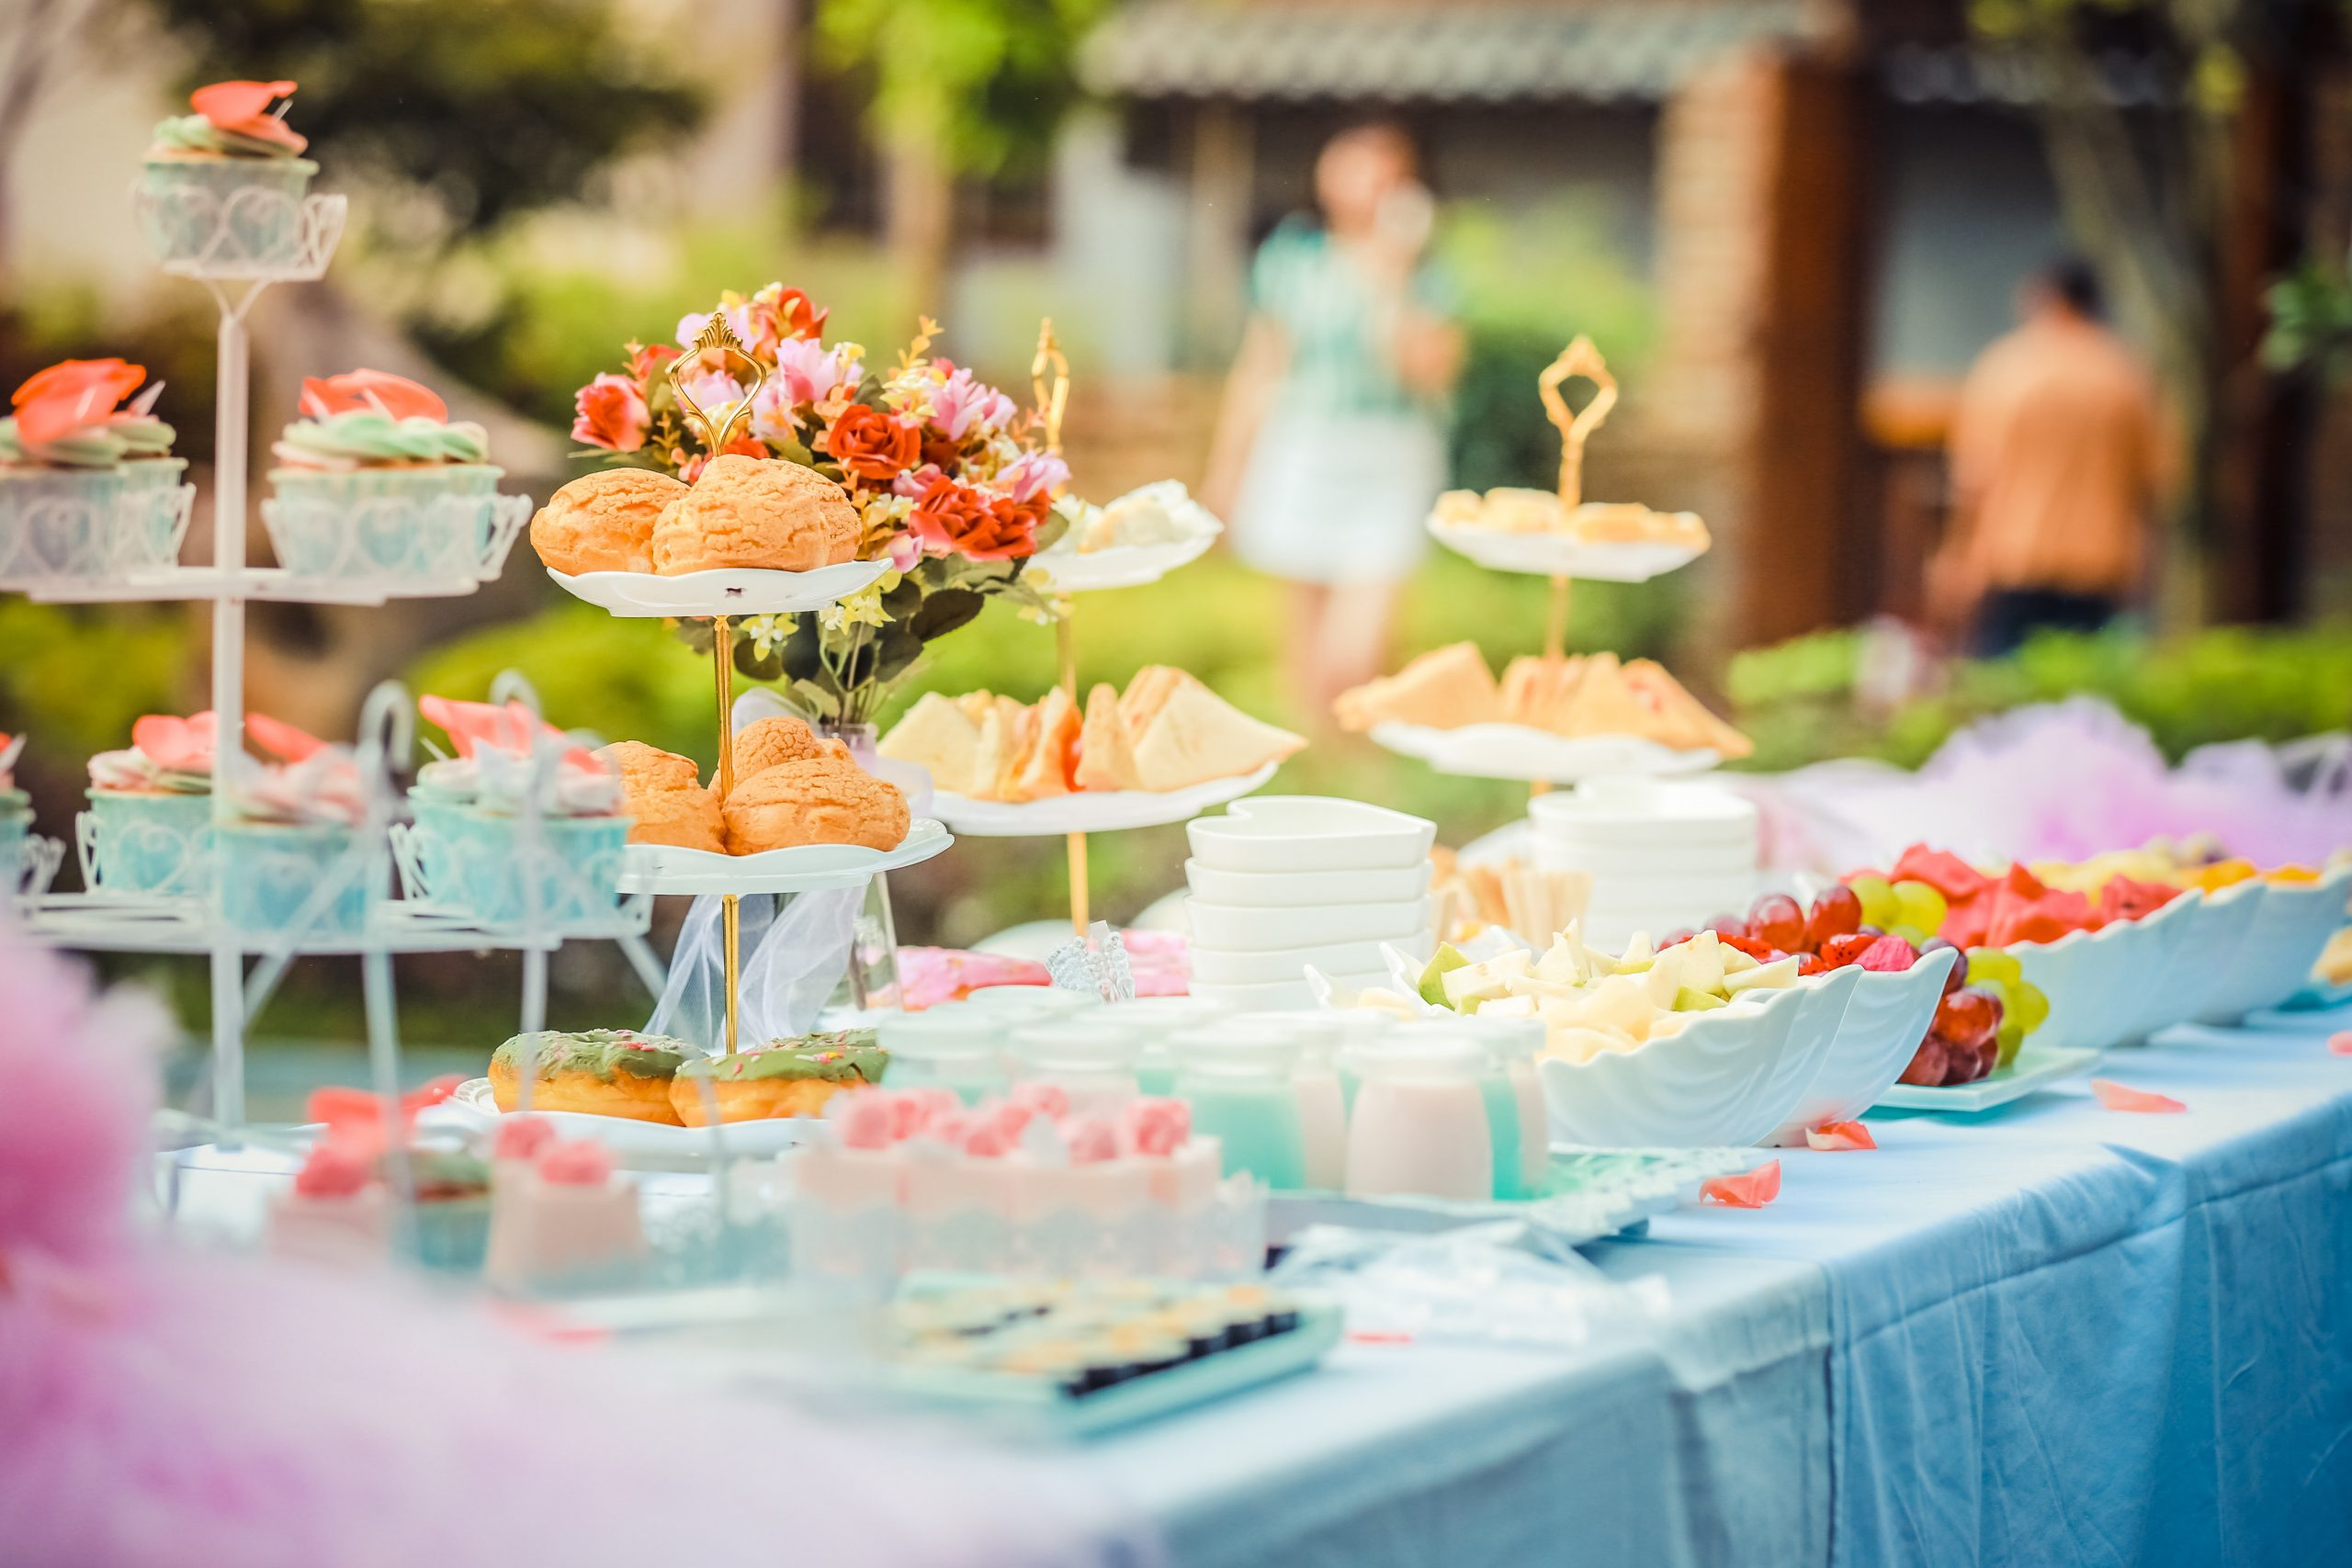 //weddingdc.in/wp-content/uploads/2020/04/celebration-colorful-colourful-cupcakes-587741-scaled.jpg